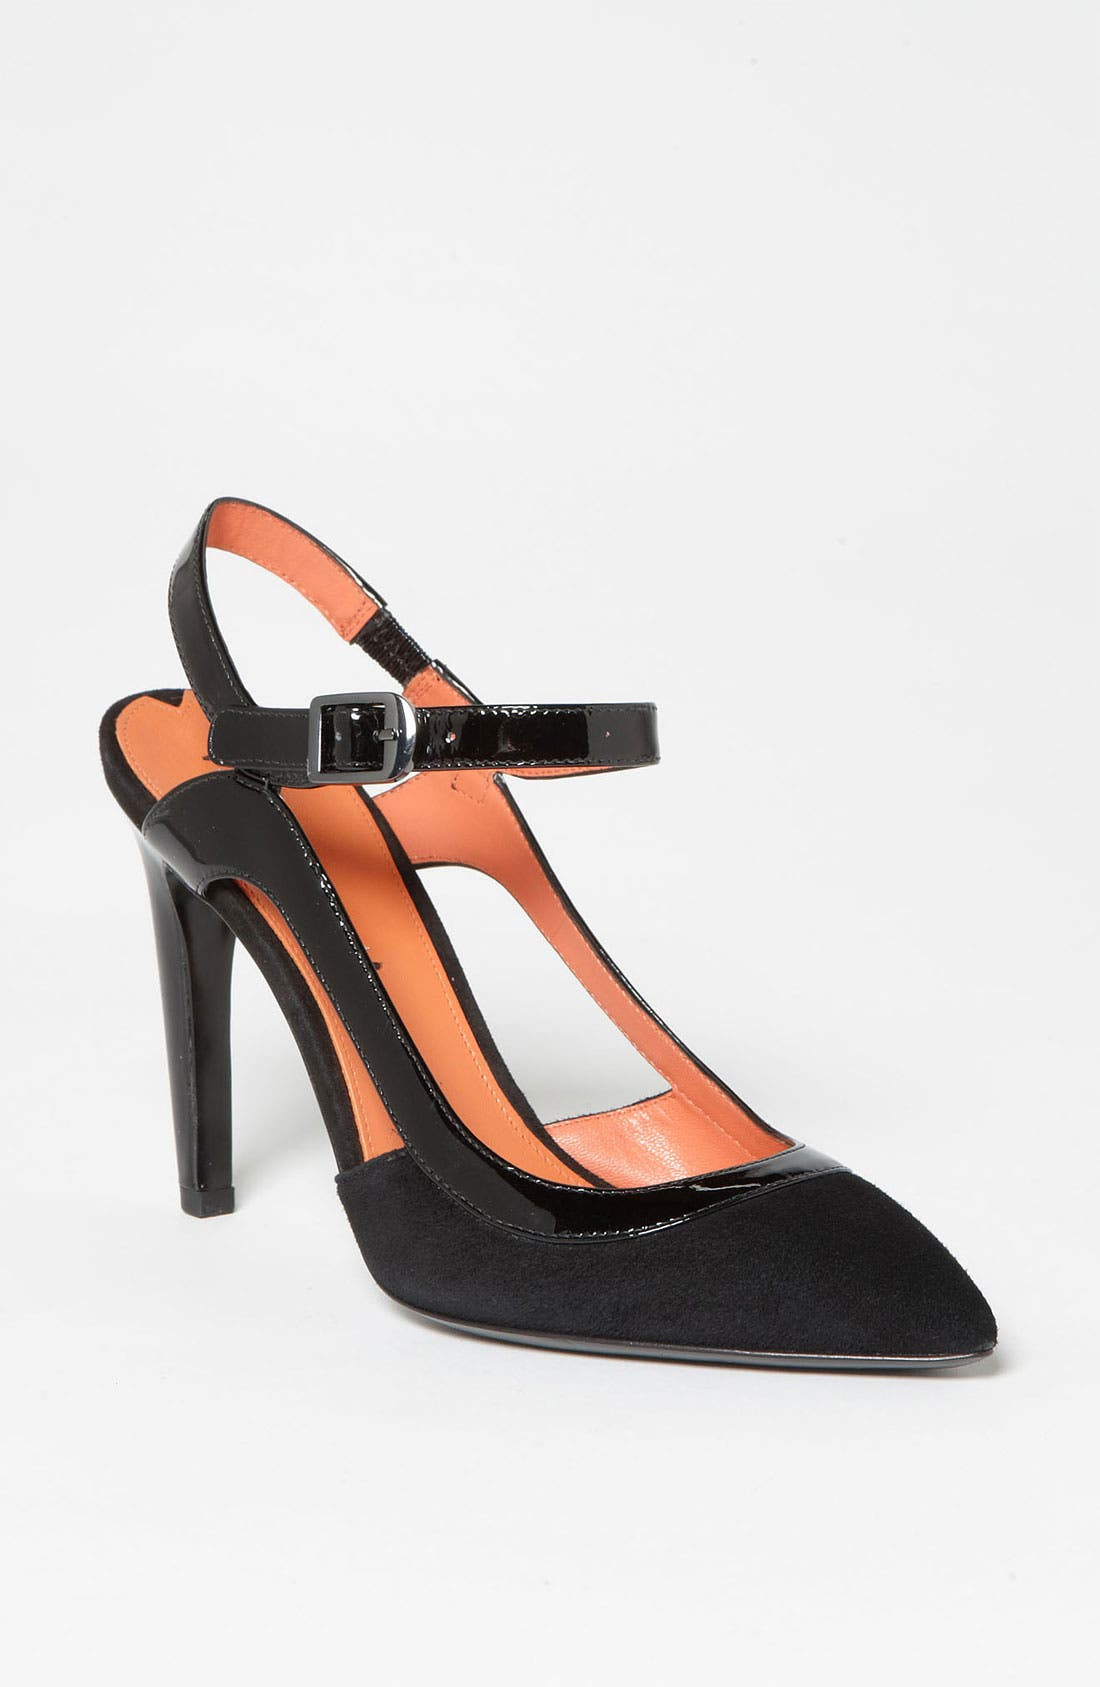 Alternate Image 1 Selected - Via Spiga 'Edwina' Pump